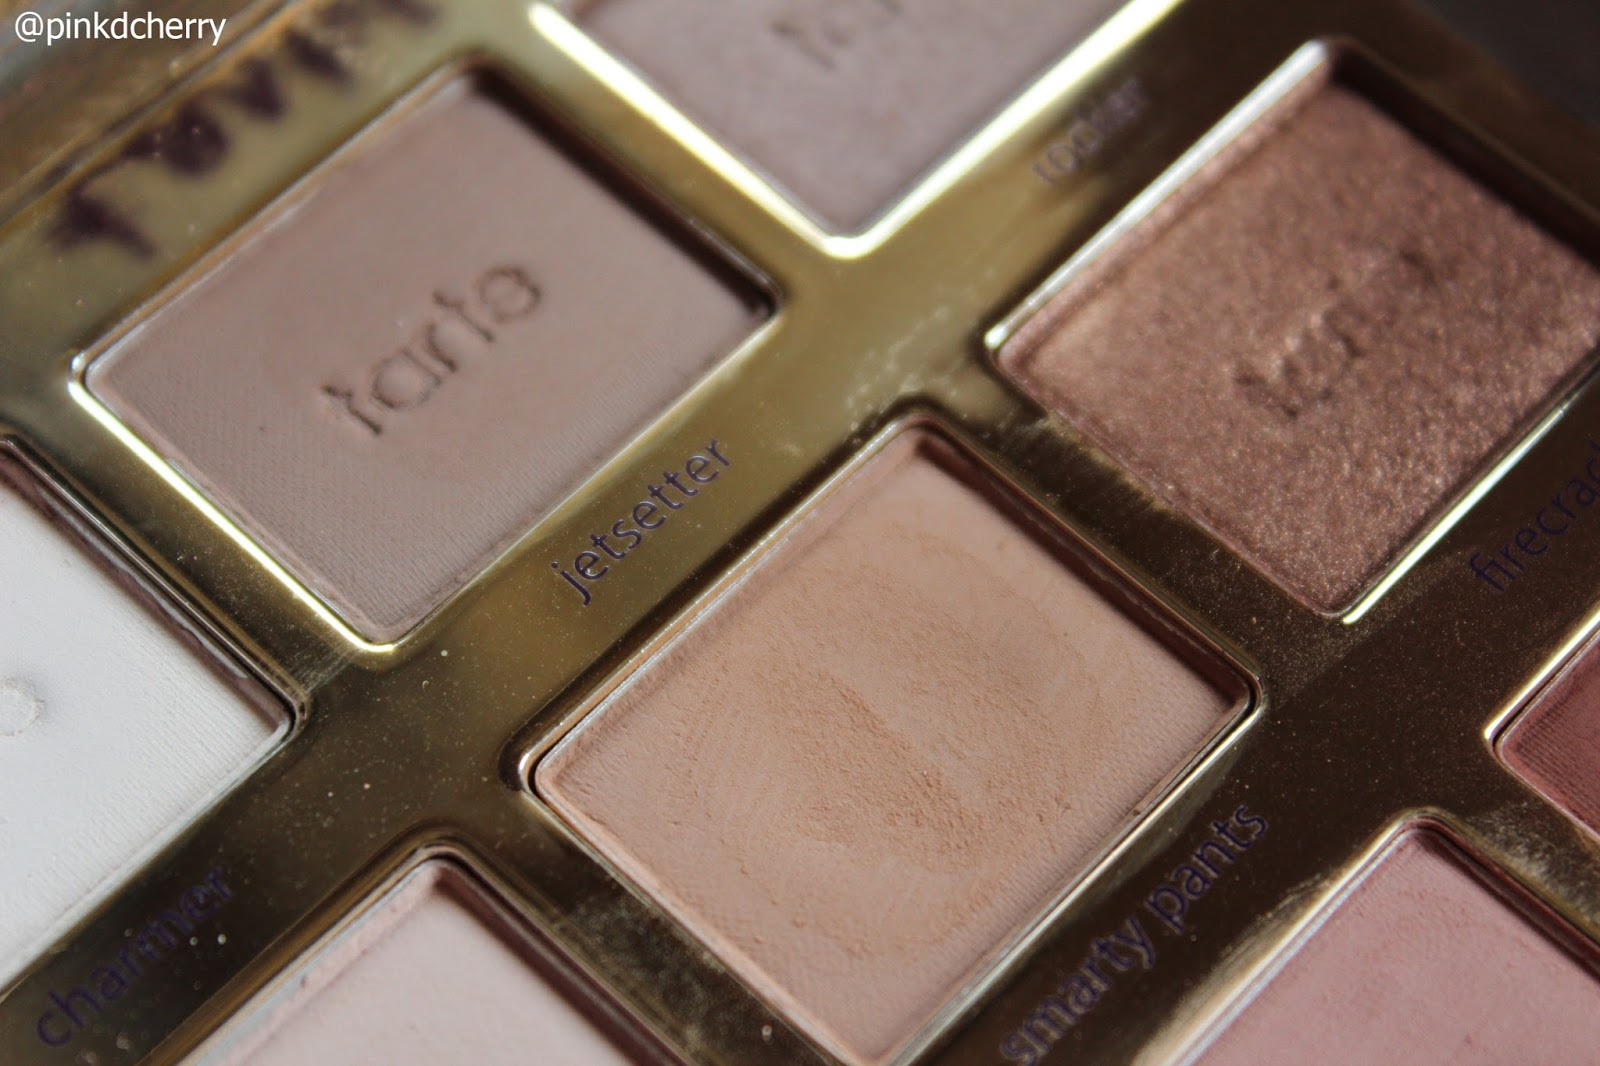 sombras paleta Tartelette in Bloom